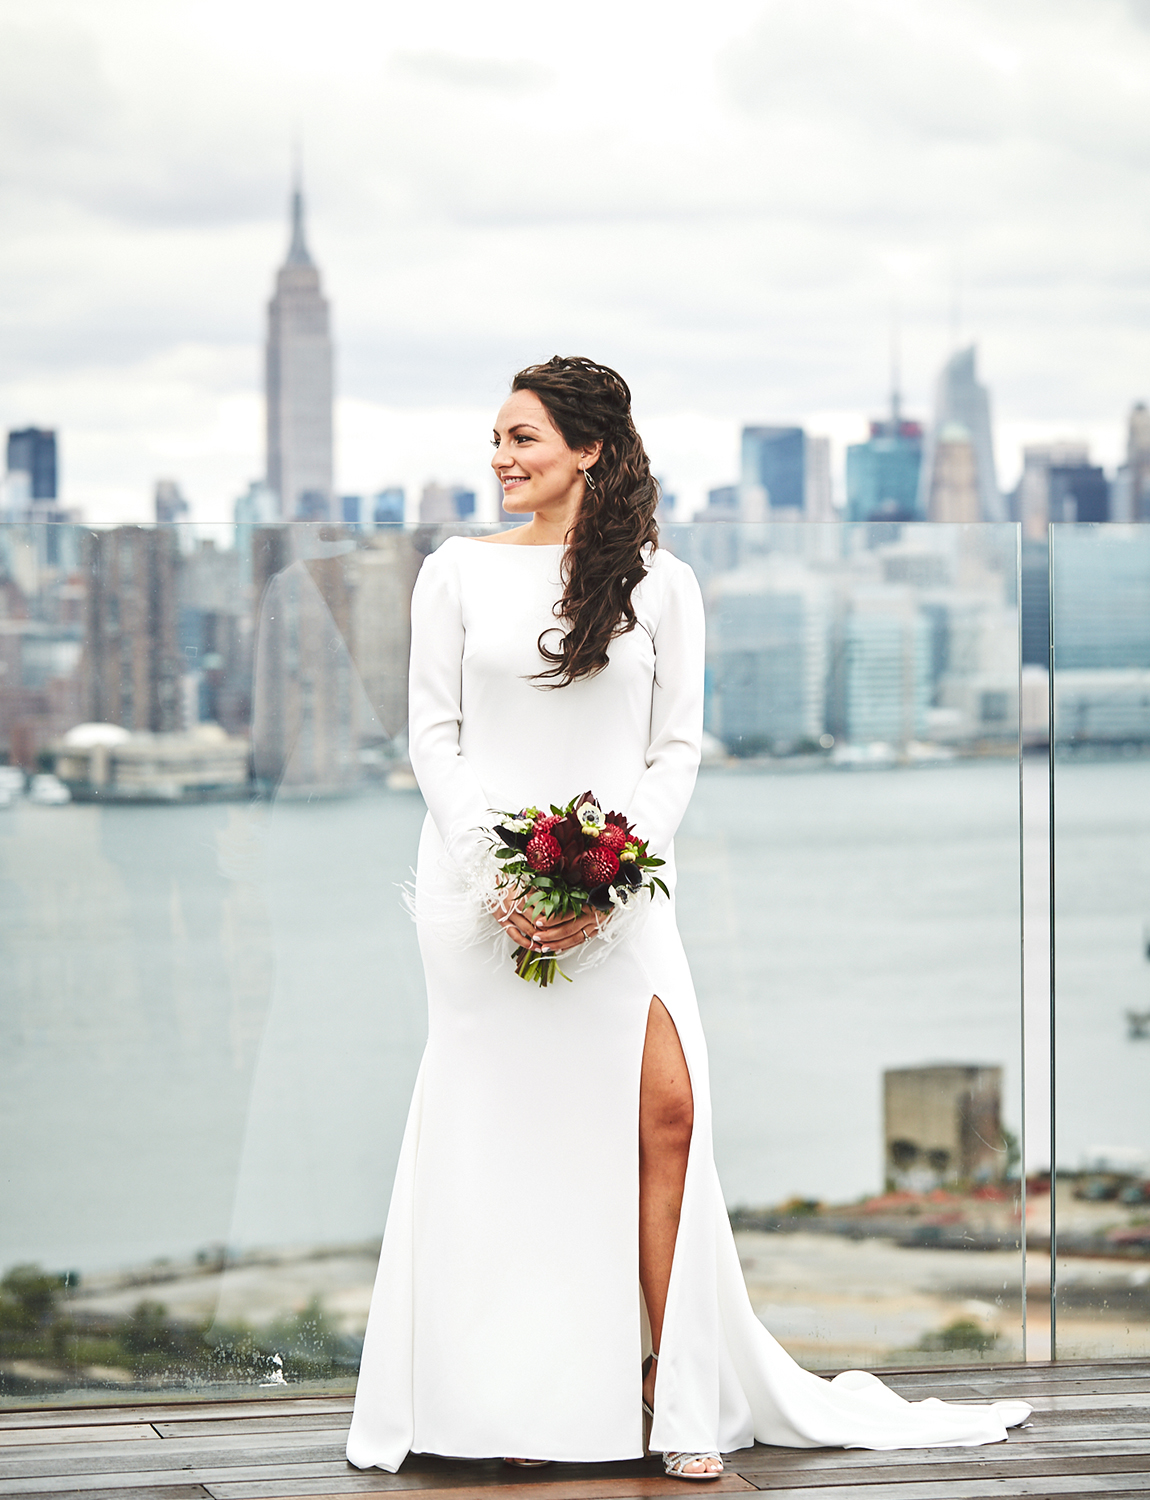 170930_WilliamValeWeddingPhotography_BrooklynWeddingPhotographer_By_BriJohnsonWeddings_0051.jpg